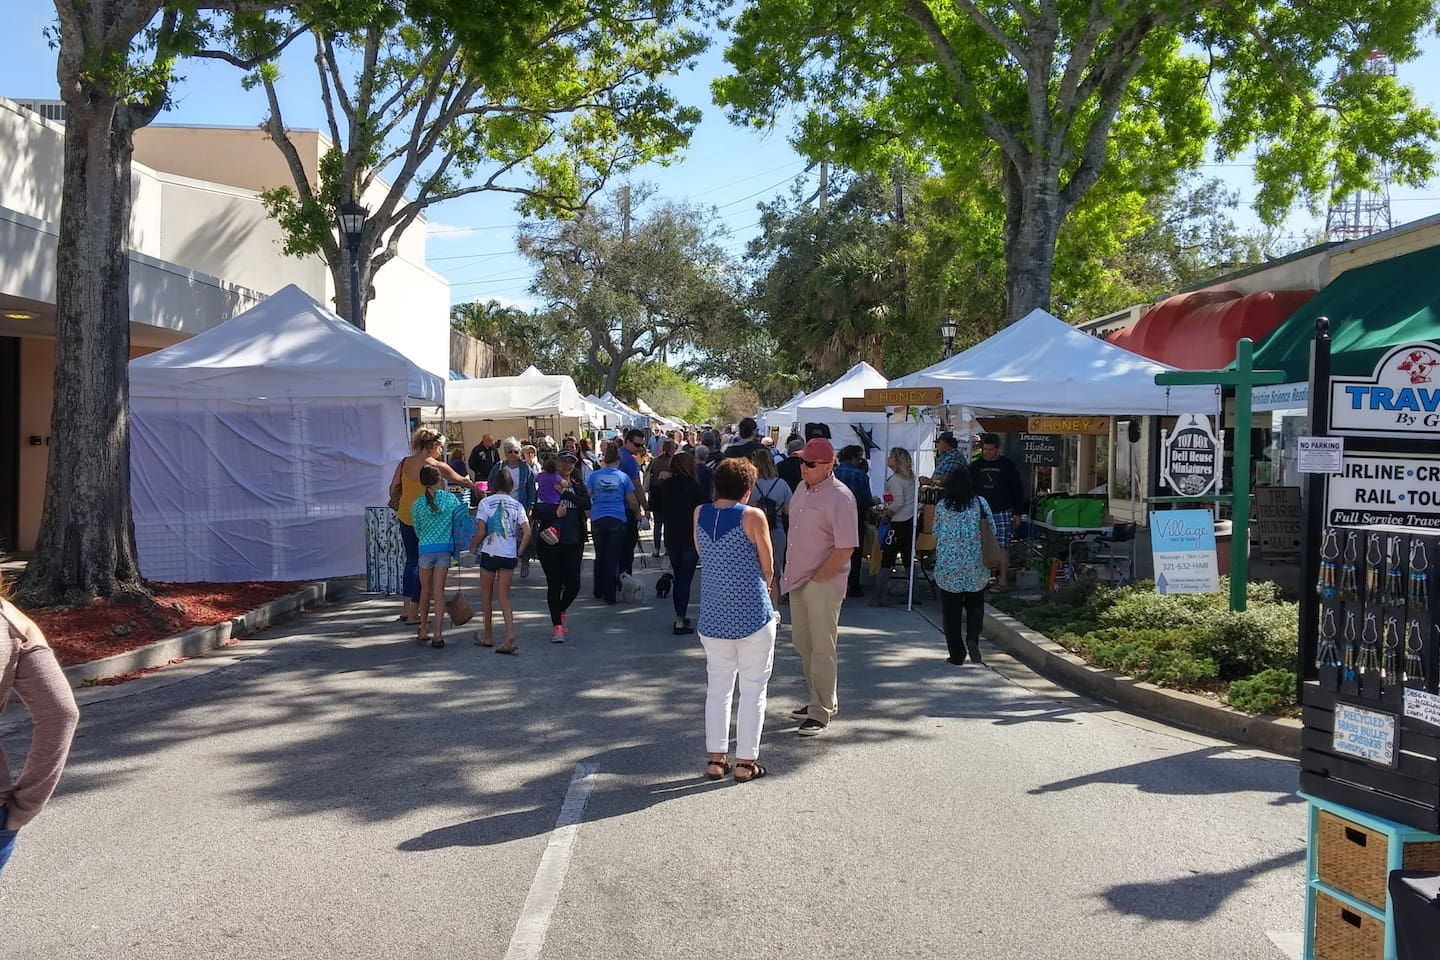 Arts and Crafts fair..one of many events in picturesque Cocoa Village